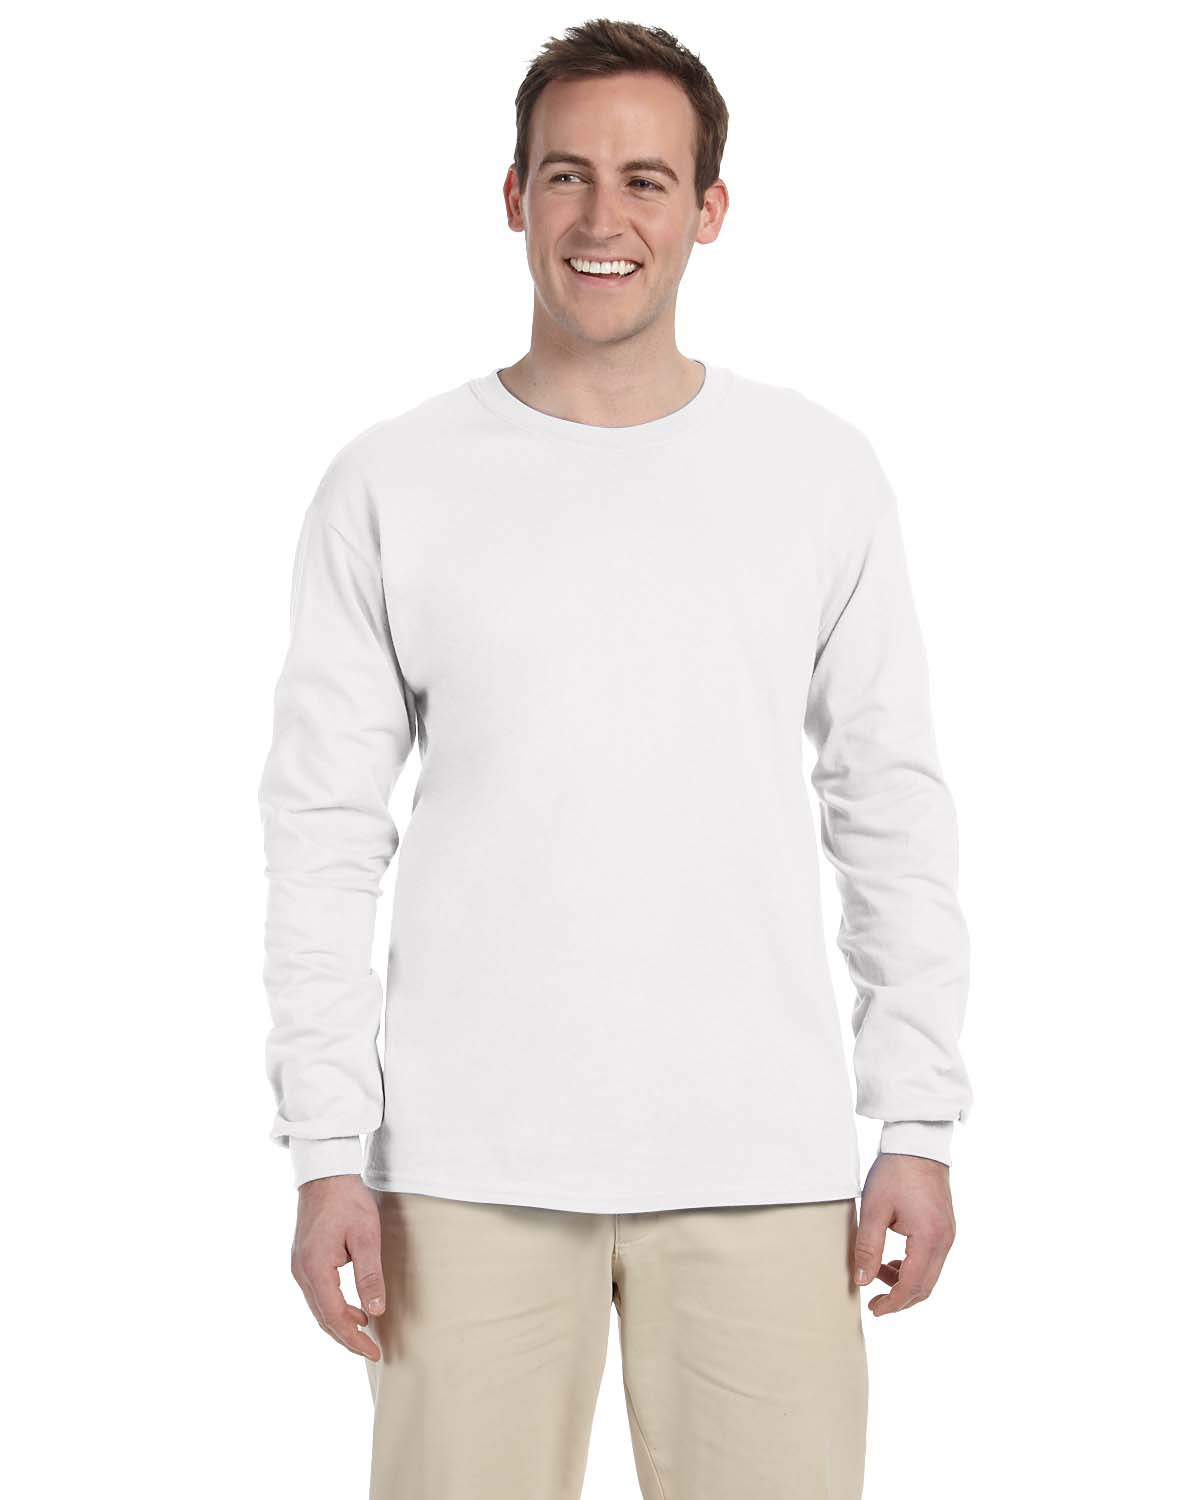 Fruit of the Loom Heavy Cotton Long-Sleeve T-Shirt 4930